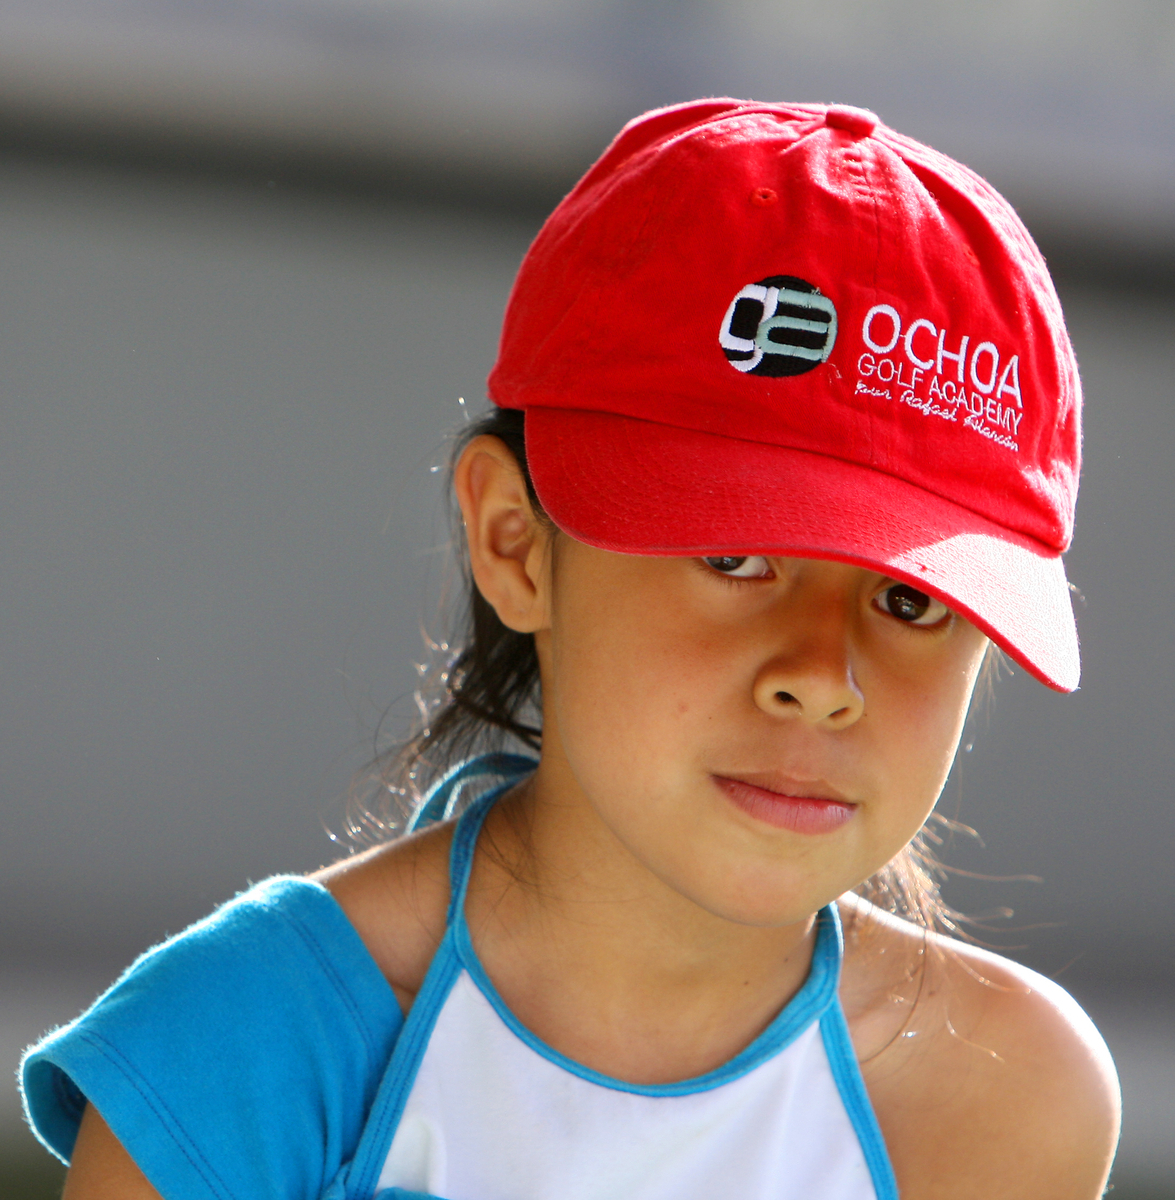 Nayelli Jazmin Gonzalez Gutierrez, 8, sports a Ochoa Golf Academy hat while practicing at the La Barranca School.